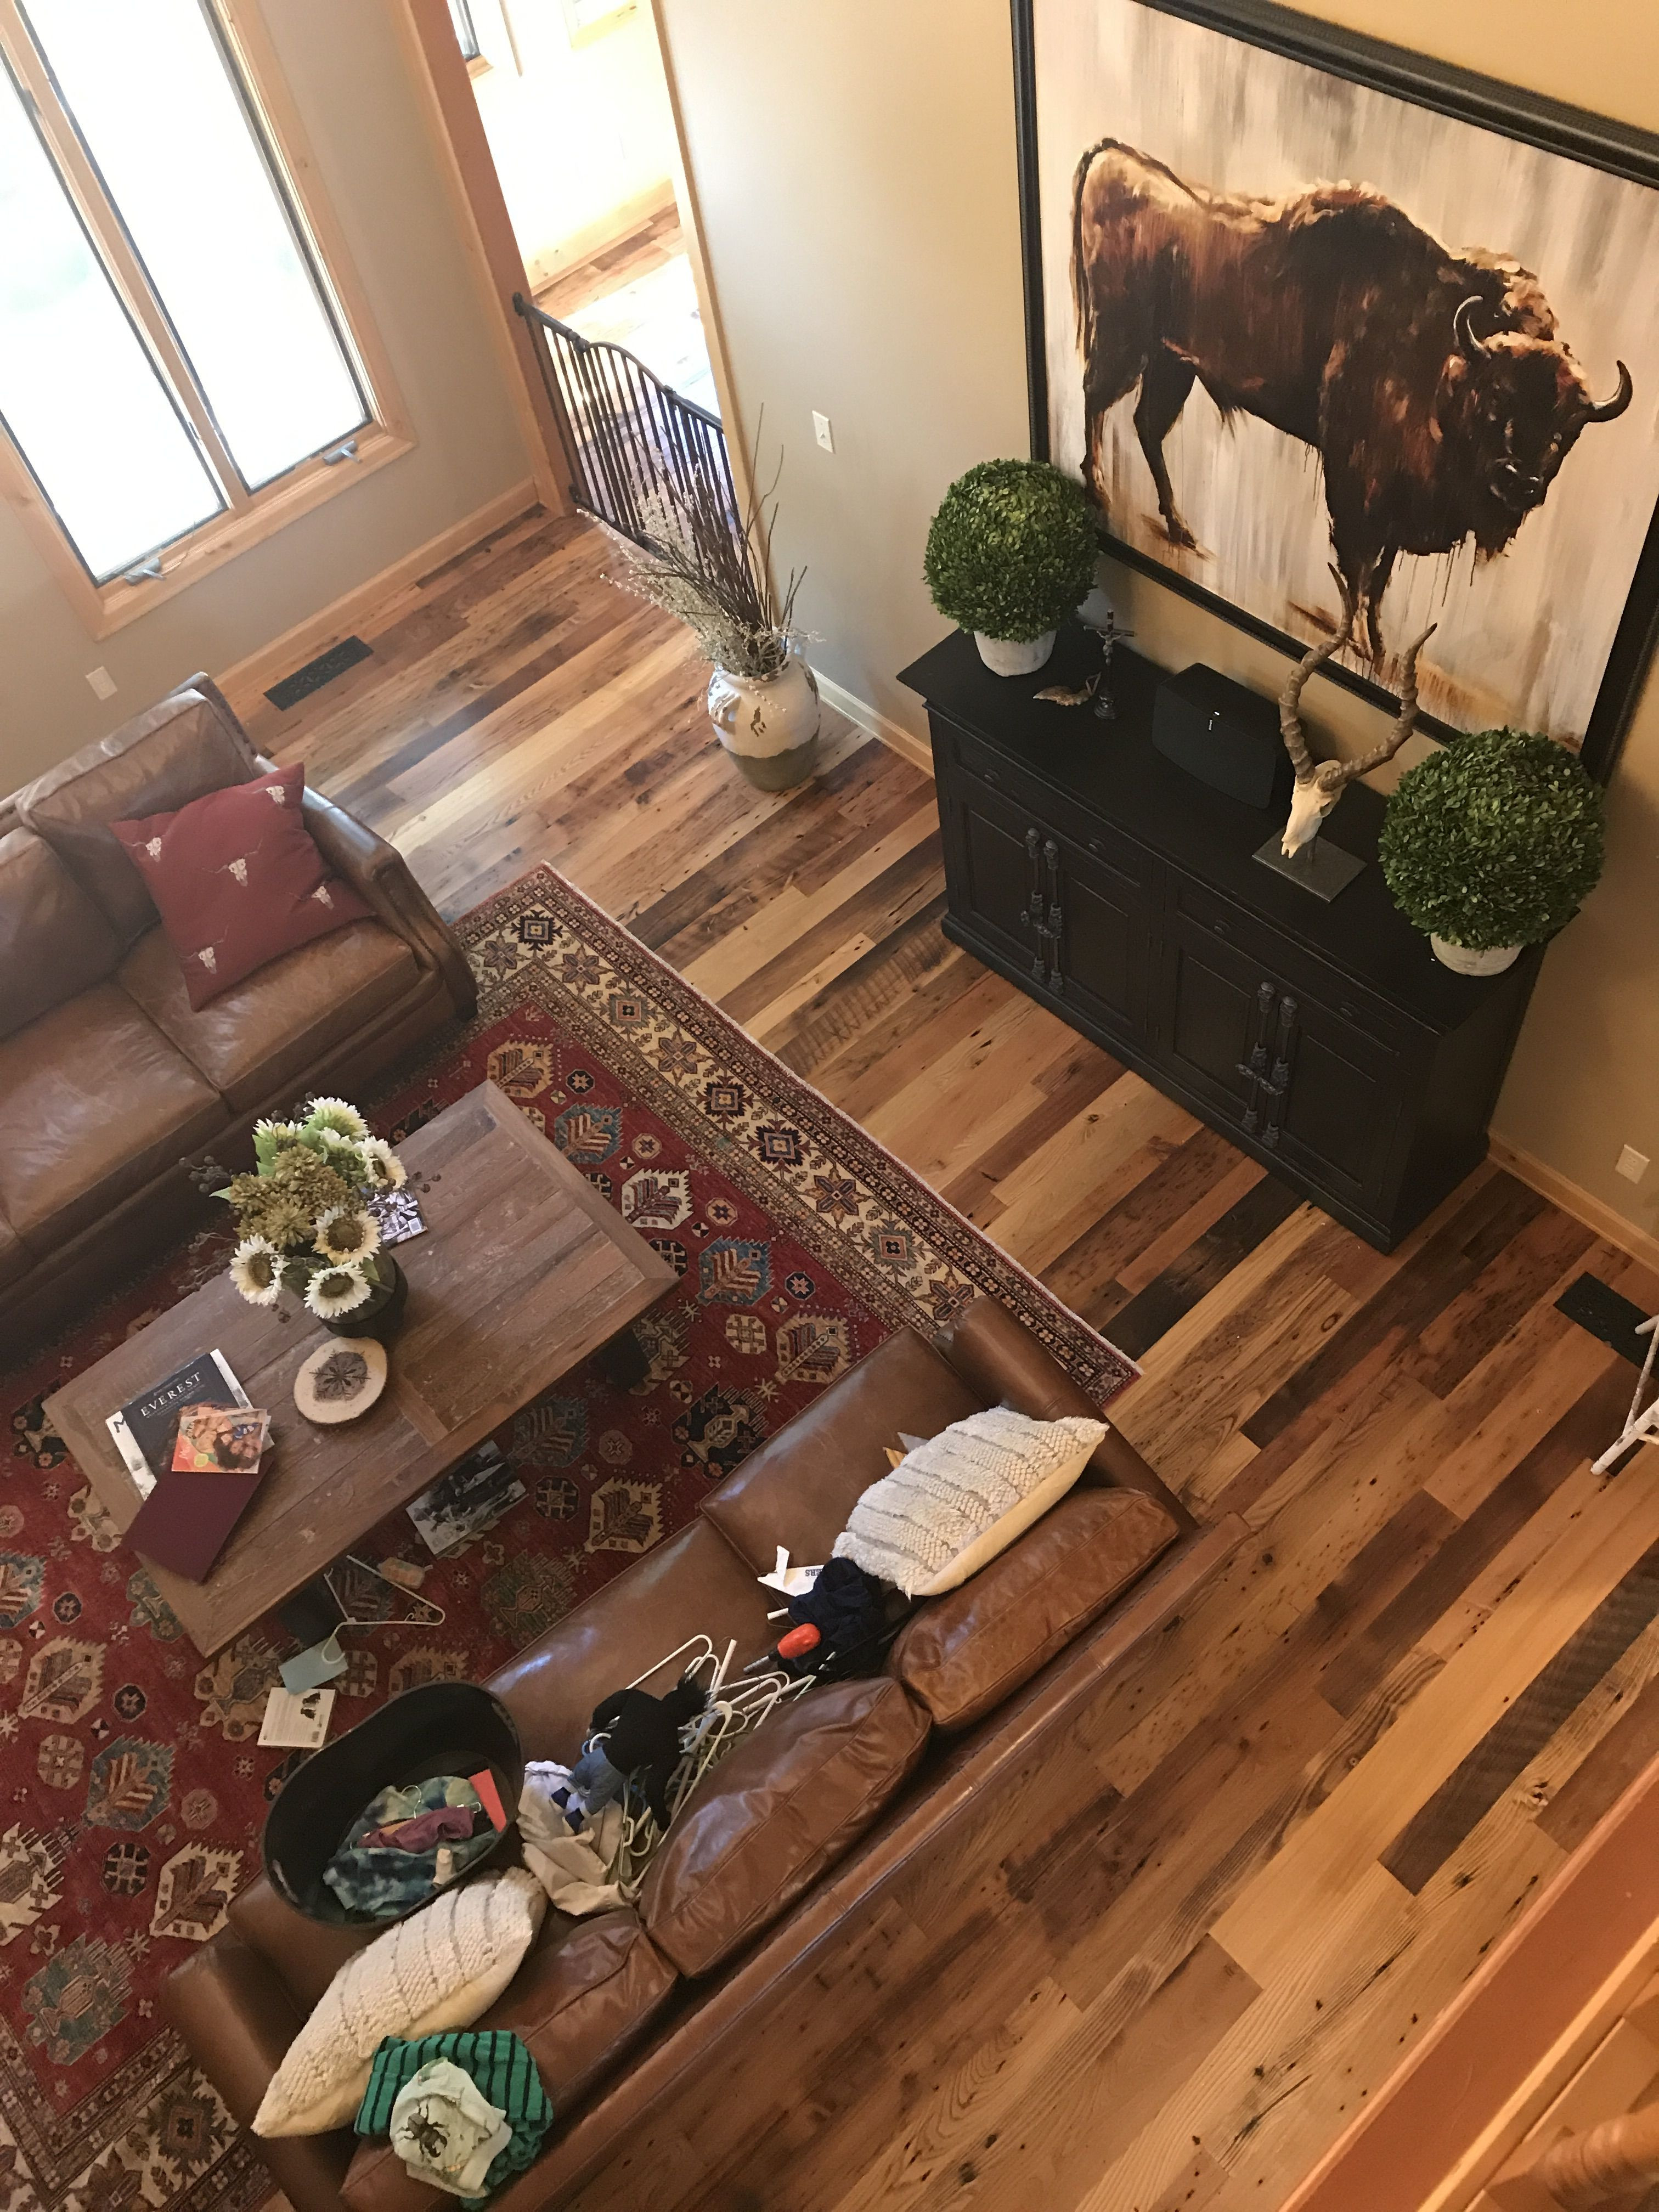 hardwood flooring refinishing service of pin by harbour hardwood floors on wood floors pinterest wood throughout harbourhardwood floors have been creating art you can walk on for over 30 years installation re finish reclaimed and all wood flooring services and